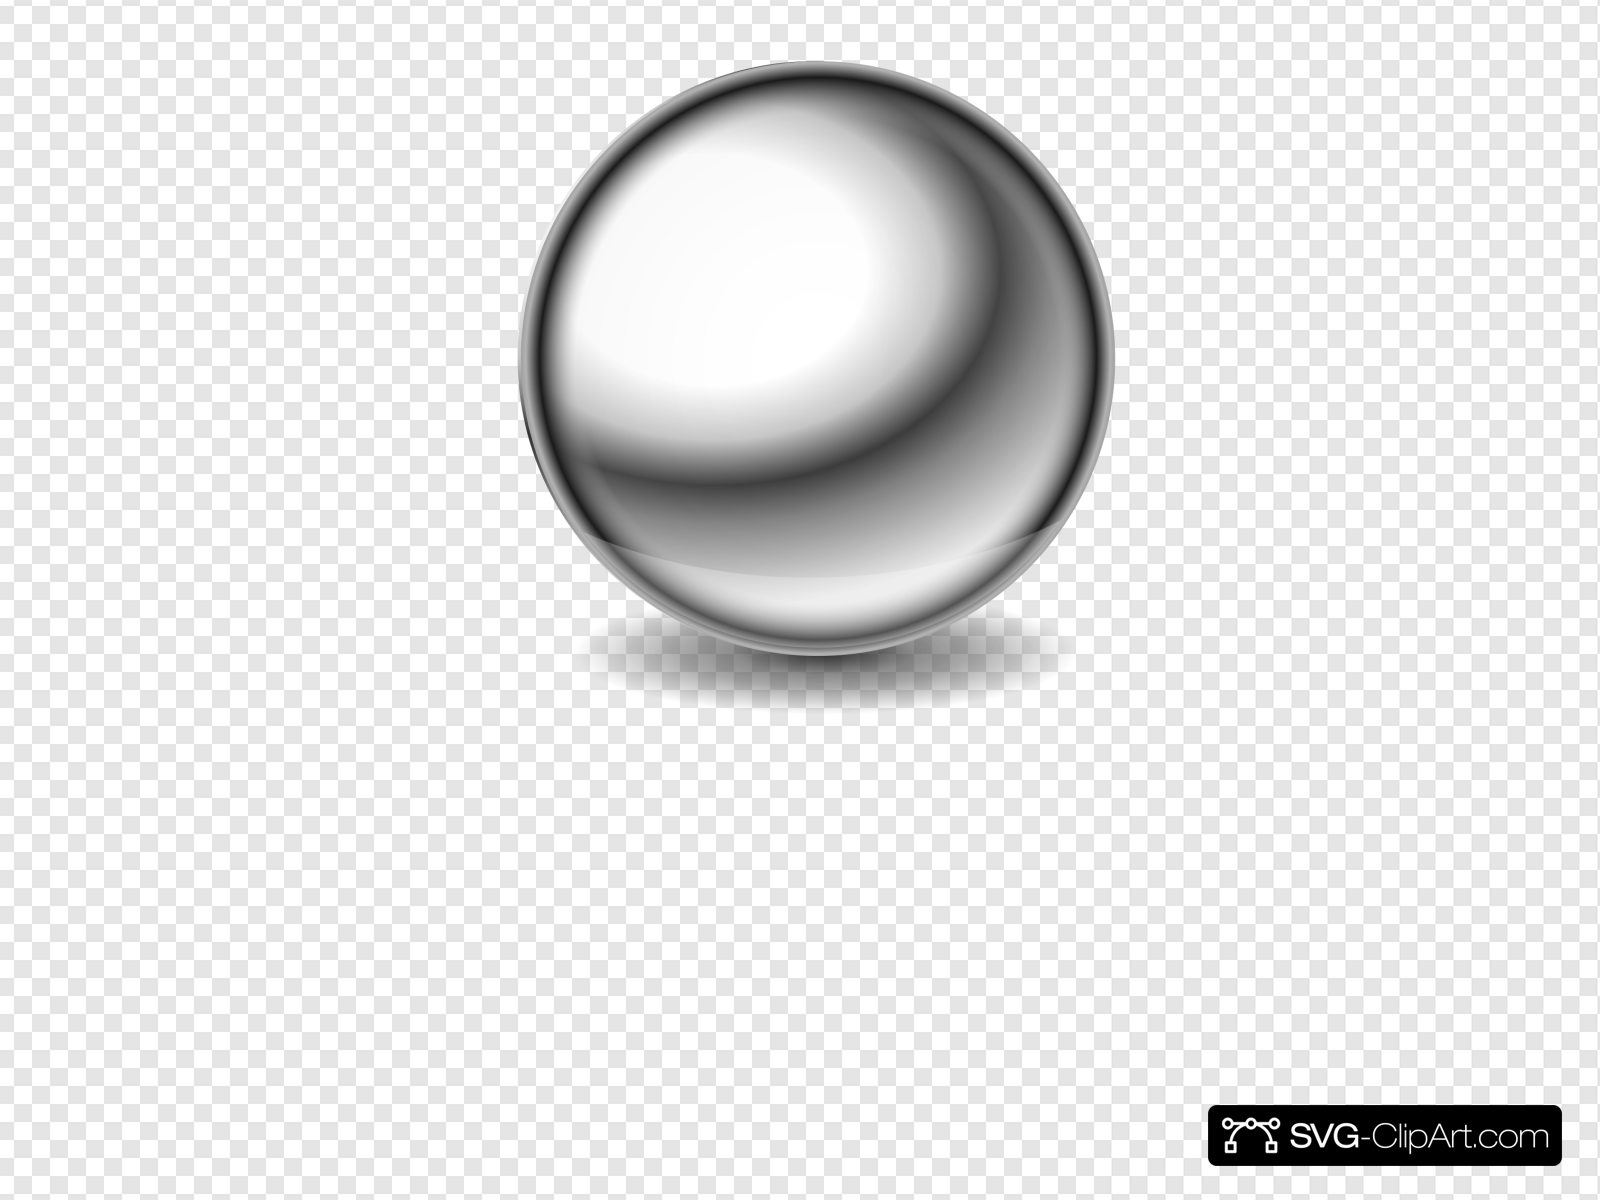 Steel Ball Clip art, Icon and SVG.